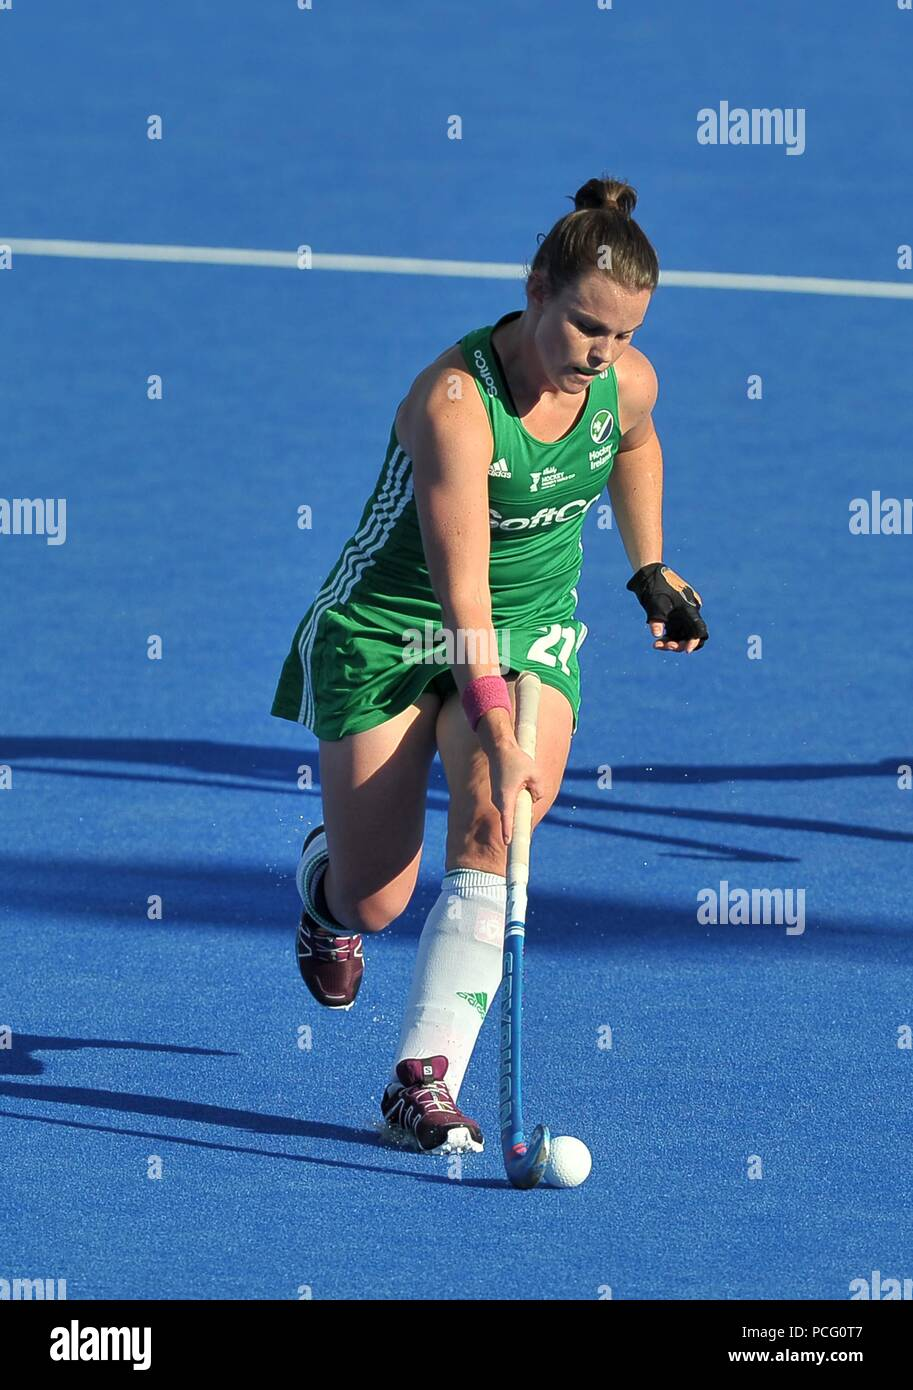 London, UK. Lizzie Colvin (IRL). Ireland V India. Match 32. Quarterfinal. Womens Hockey World Cup 2018. Lee Valley hockey centre. Queen Elizabeth Olympic Park. Stratford. London. UK. 02/08/2018. Credit: Sport In Pictures/Alamy Live News - Stock Image